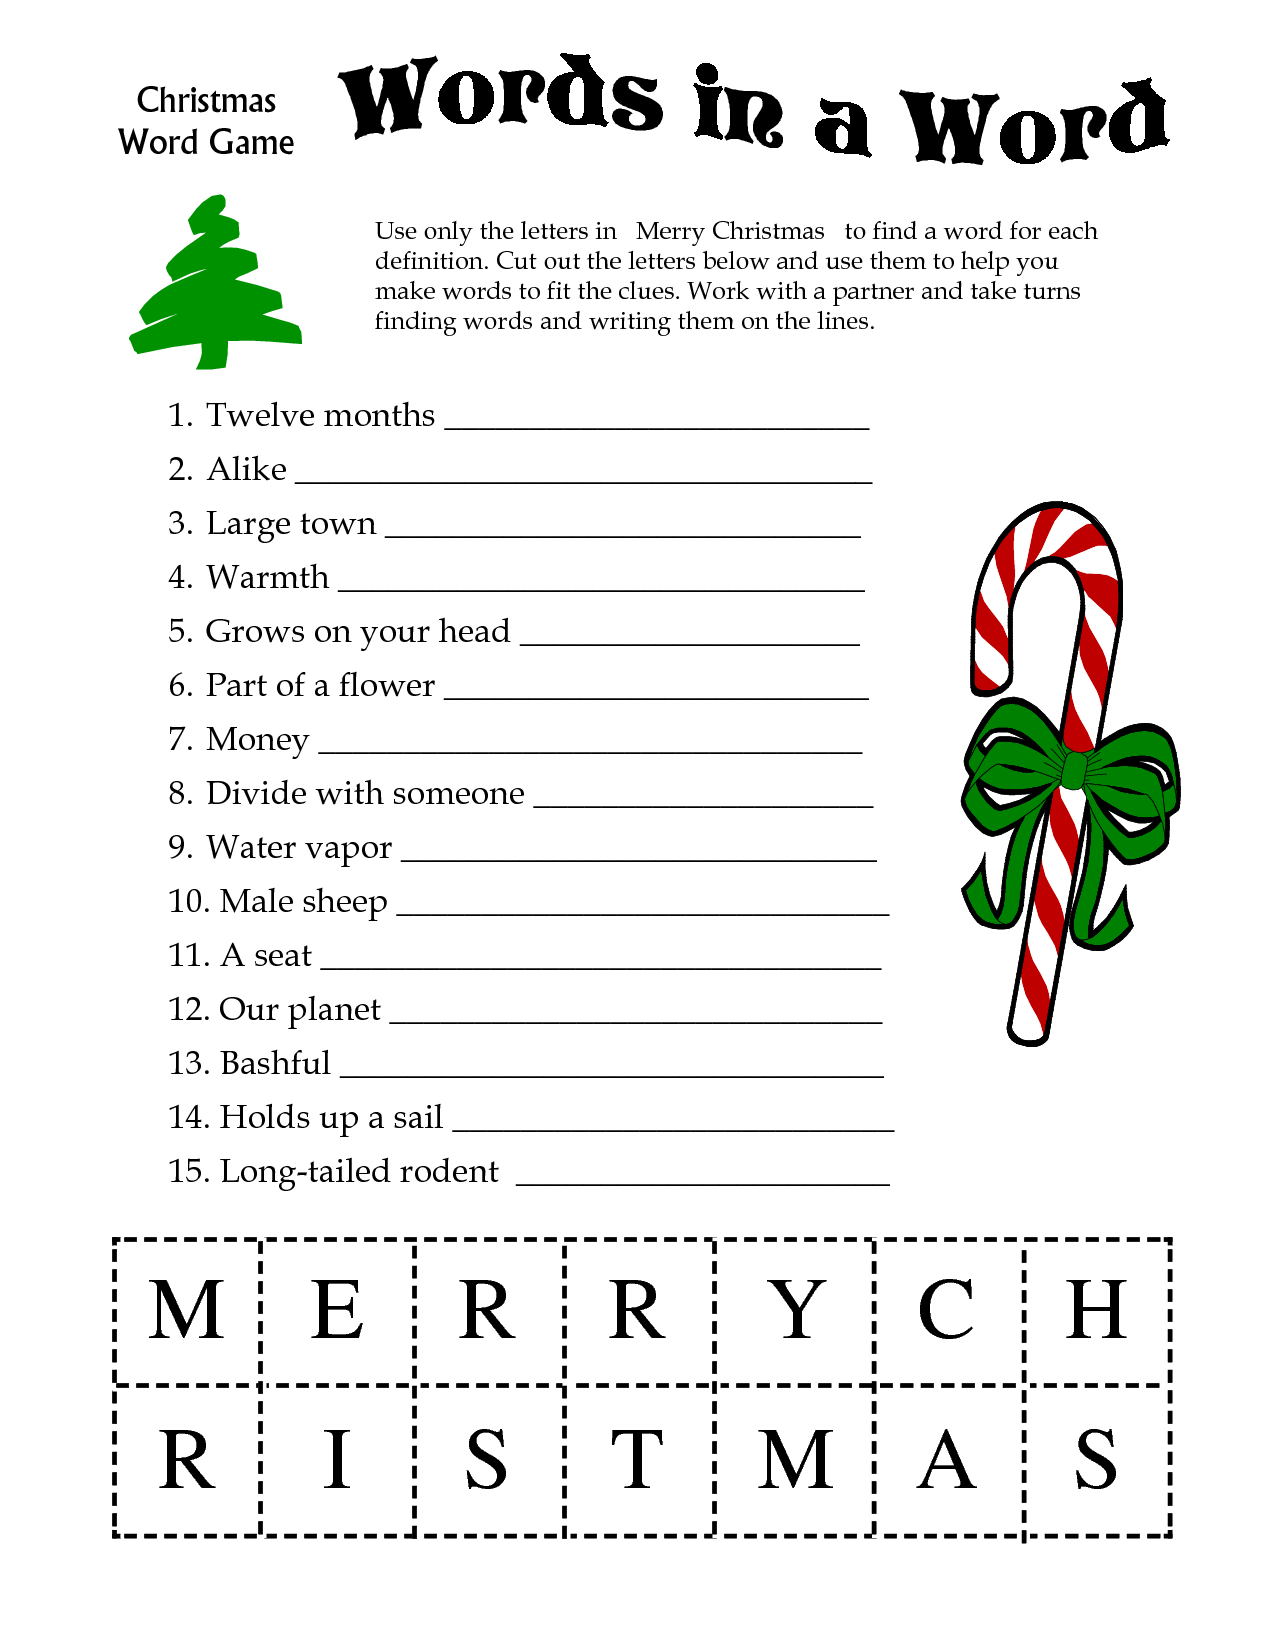 5 Images Of Free Printable Christmas Word Games | Printablee - Free Games For Christmas That Is Printable